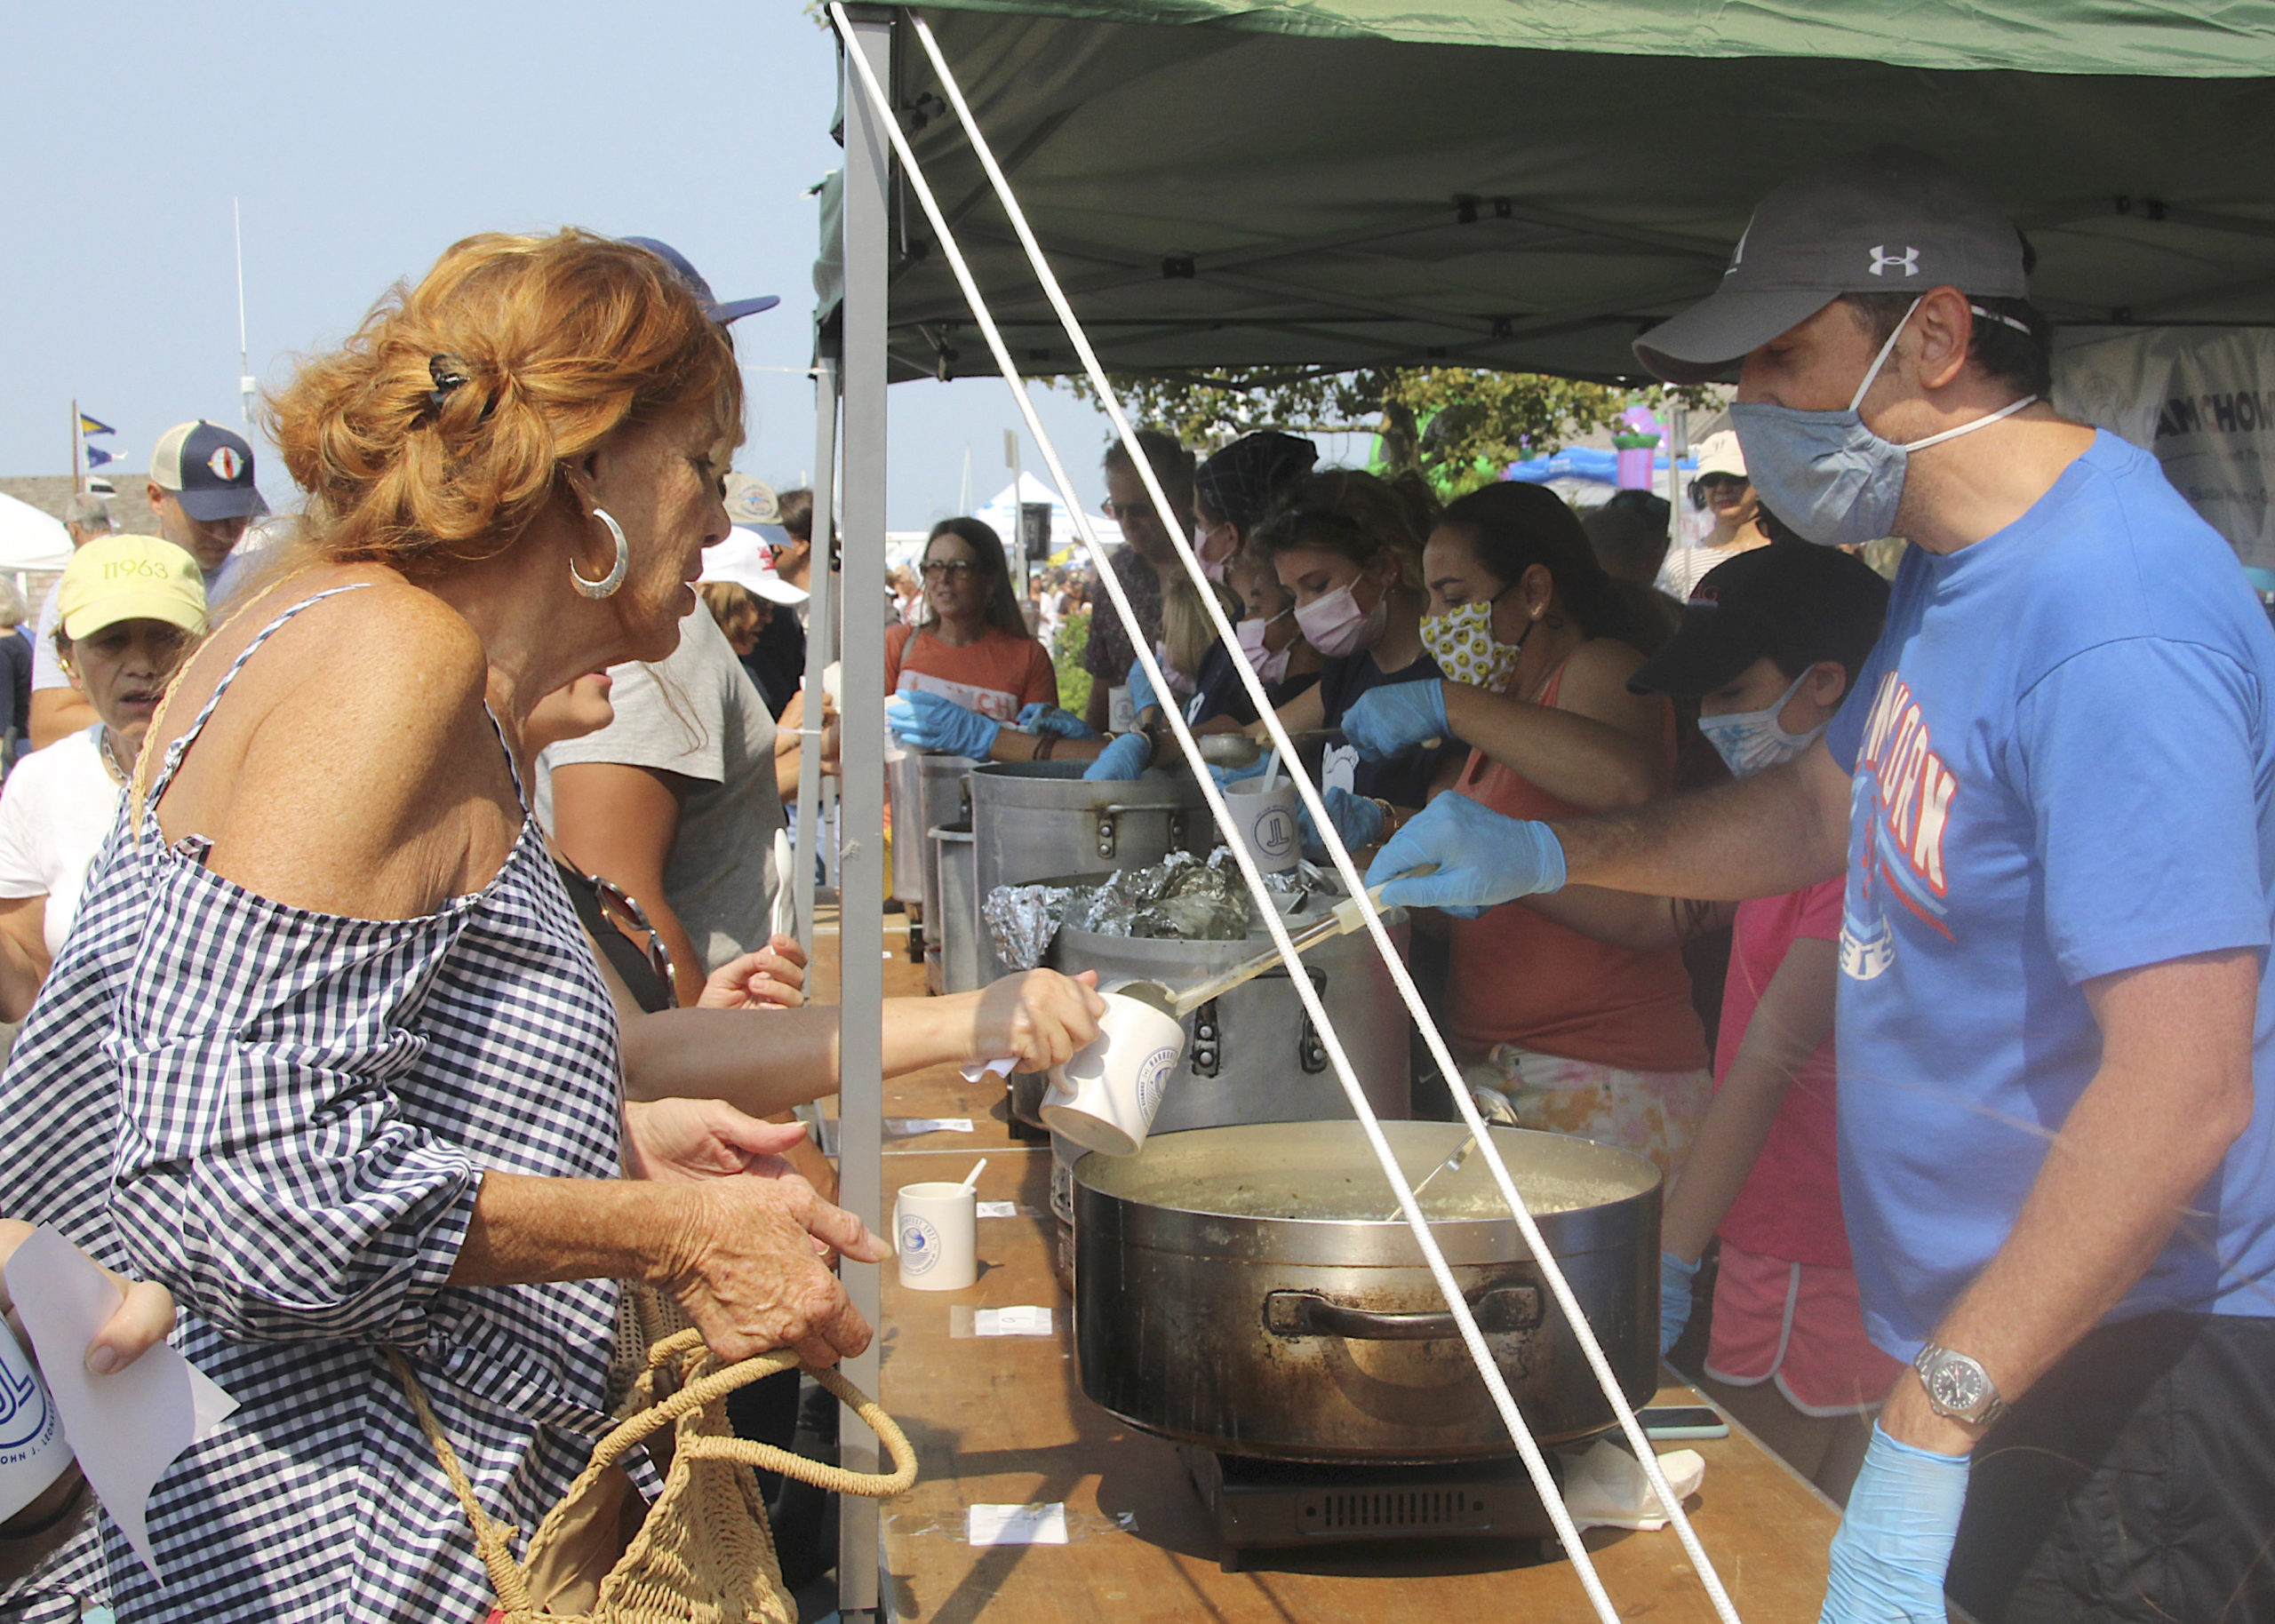 The clam chowder contest on Sunday.  KYRIL BROMLEY